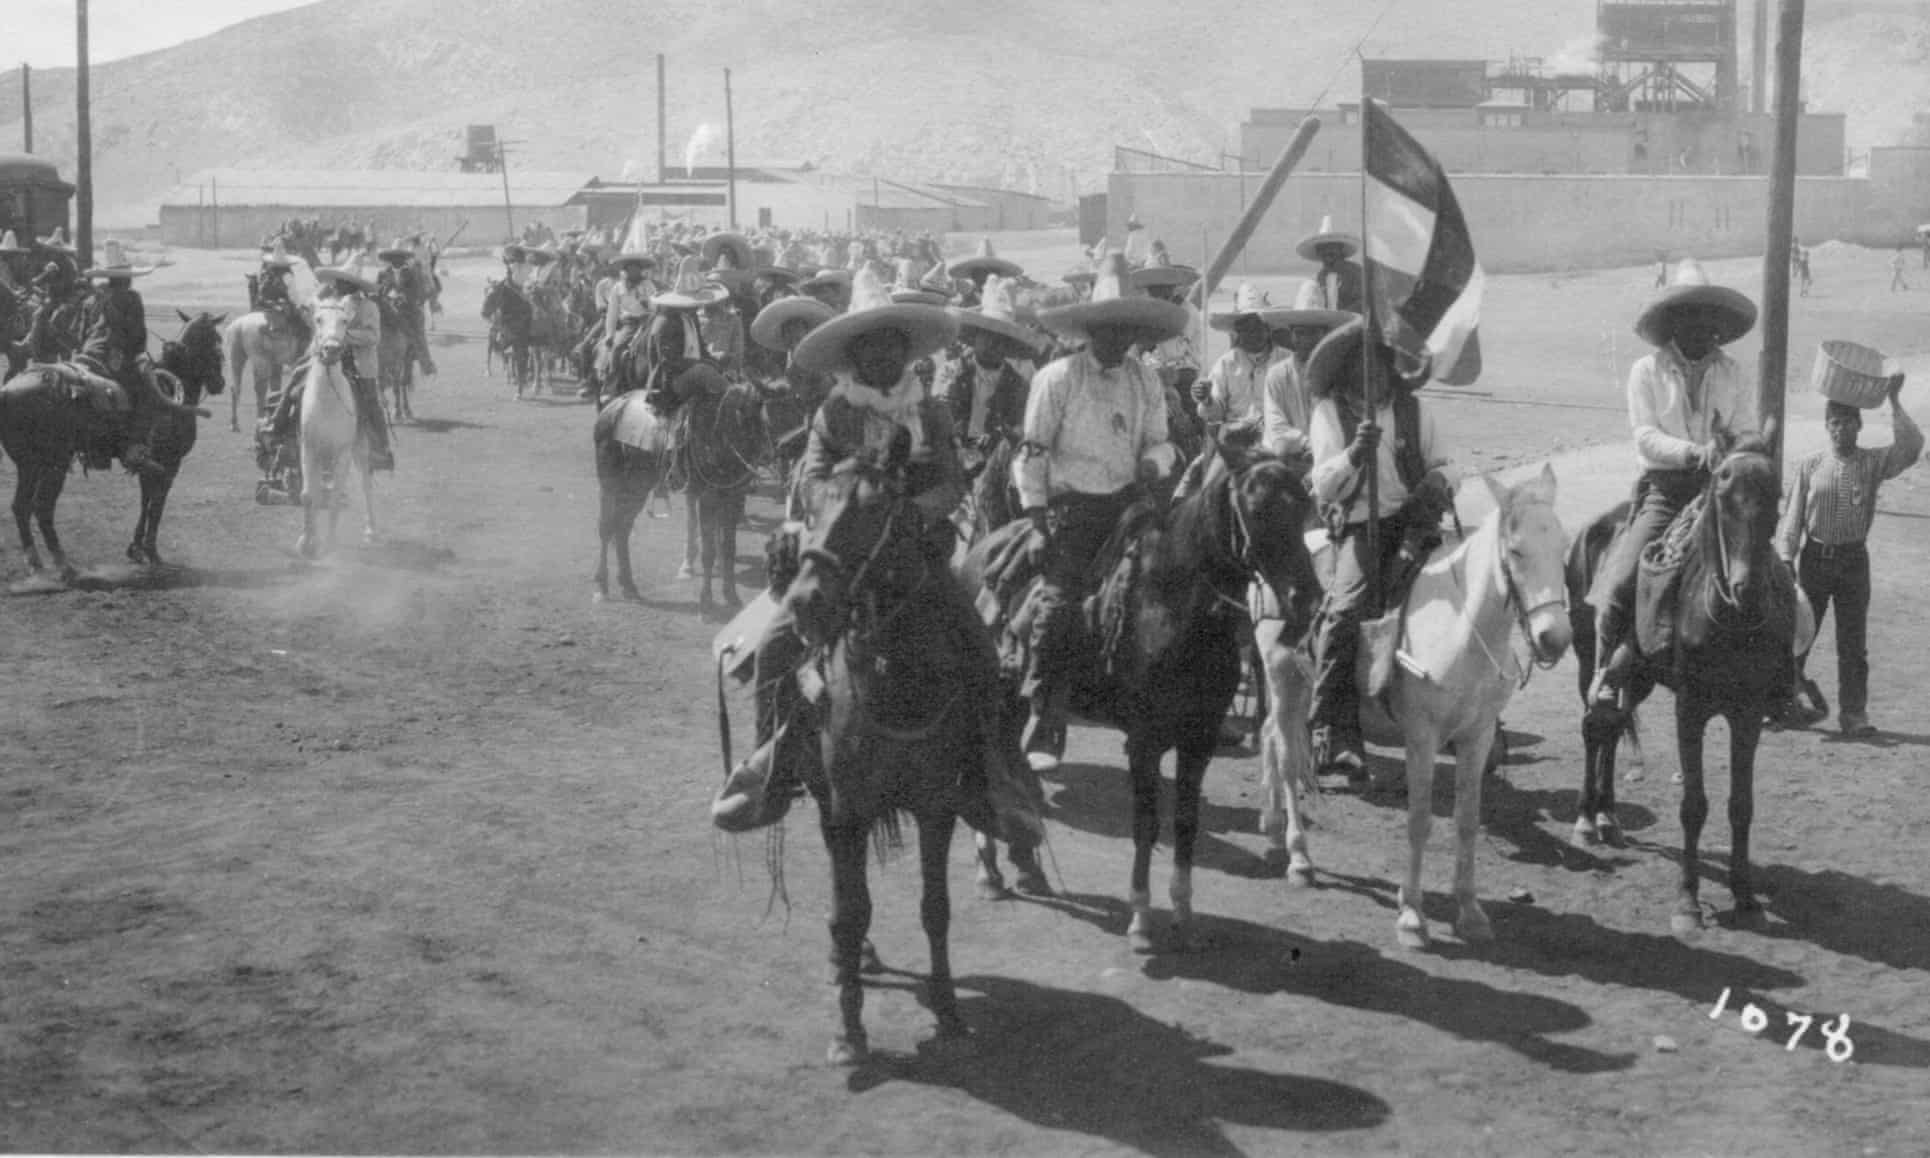 Revolutionary soldiers on horseback in the city of Torreón in 1911. Photograph: Courtesy of the Torreón municipal archive